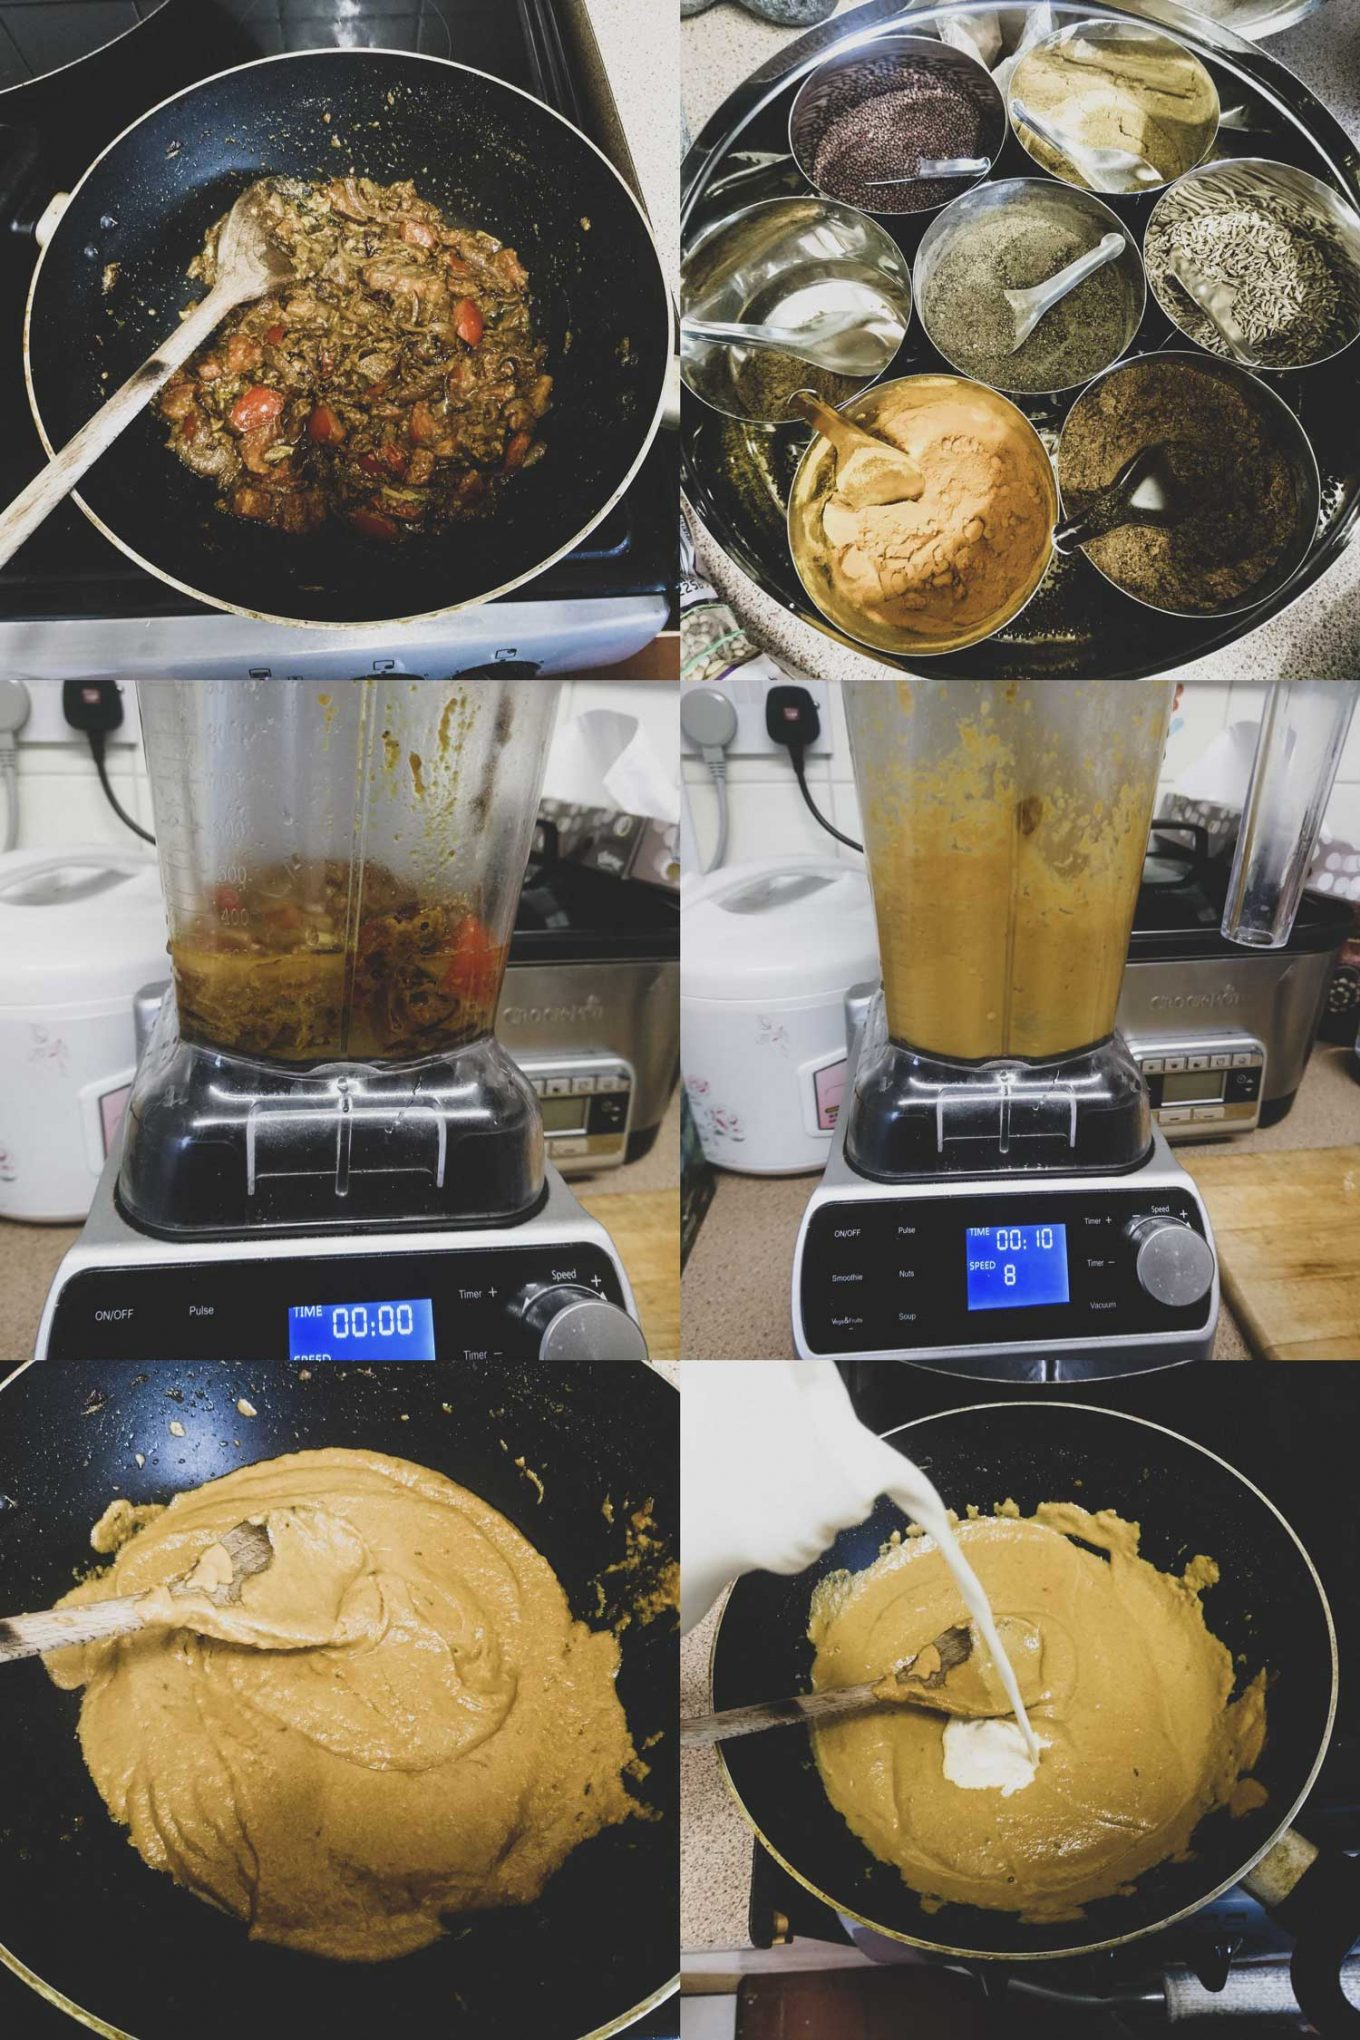 Montage of step by step process shots for how to make malai kofta gravy.